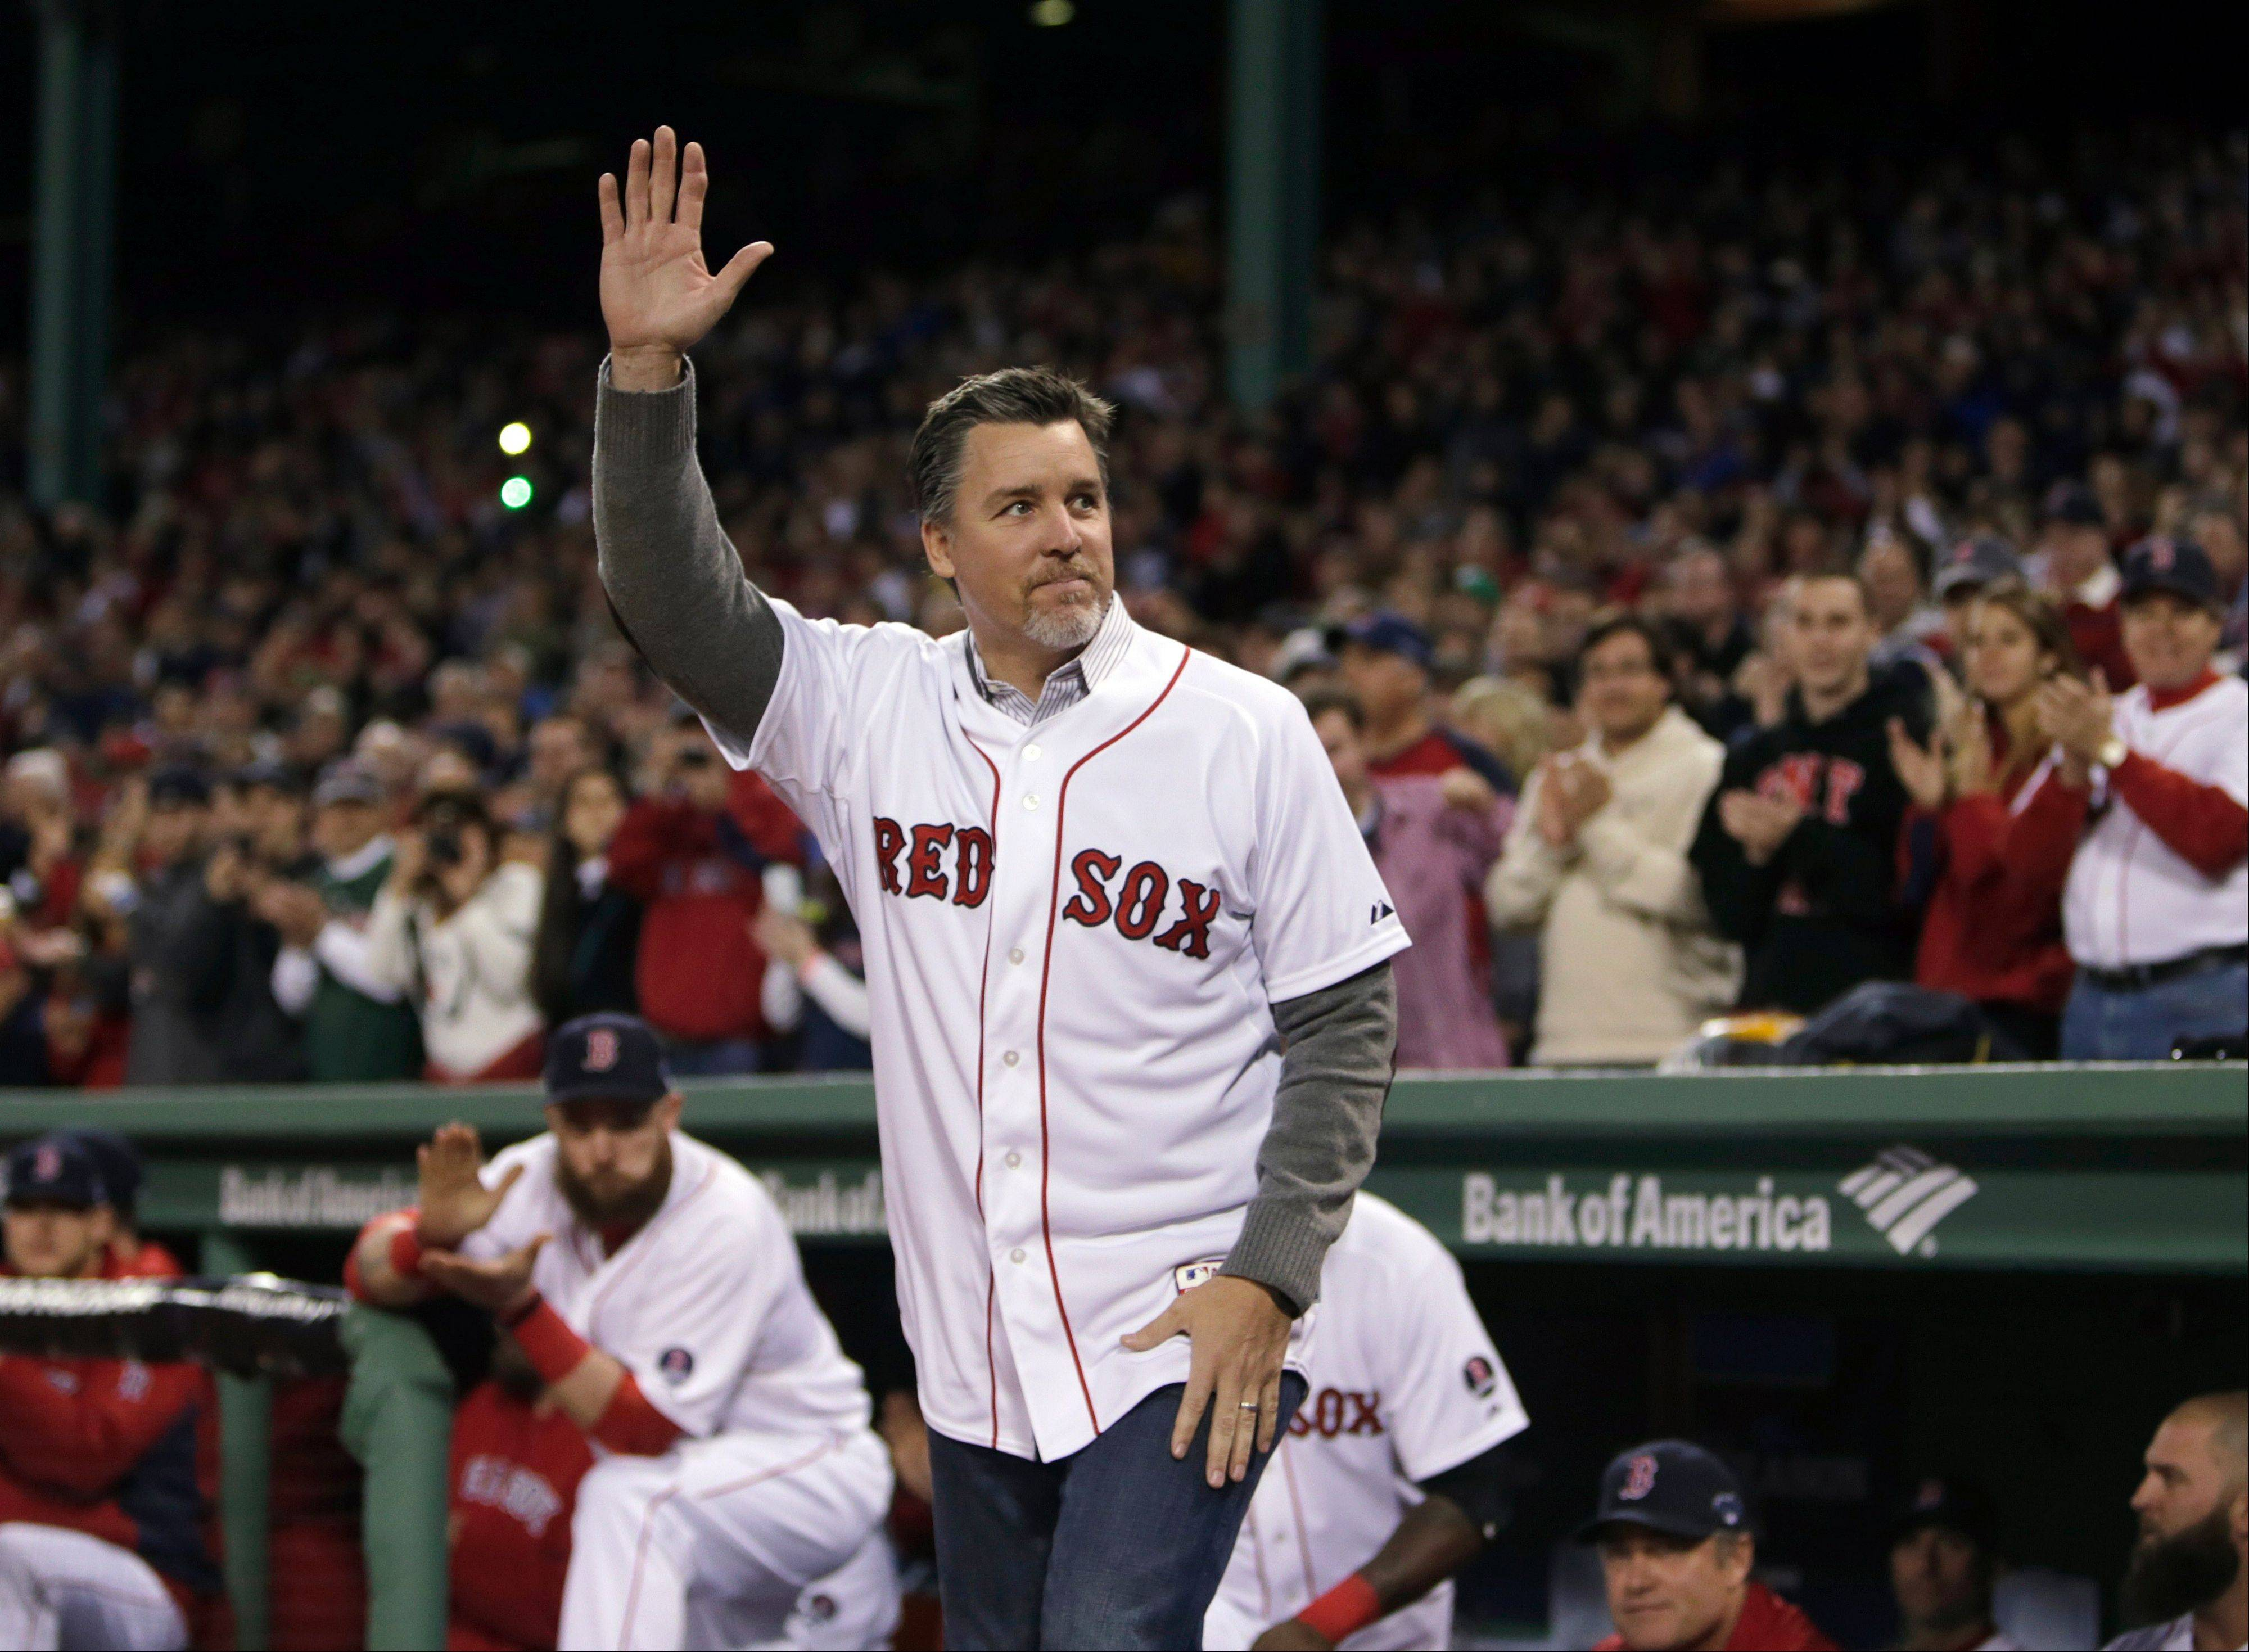 Former Boston Red Sox player Bill Mueller, who played on the Red Sox 2004 World Series winning team and won a 2003 batting title, will join the Cubs as a hitting coach next season.